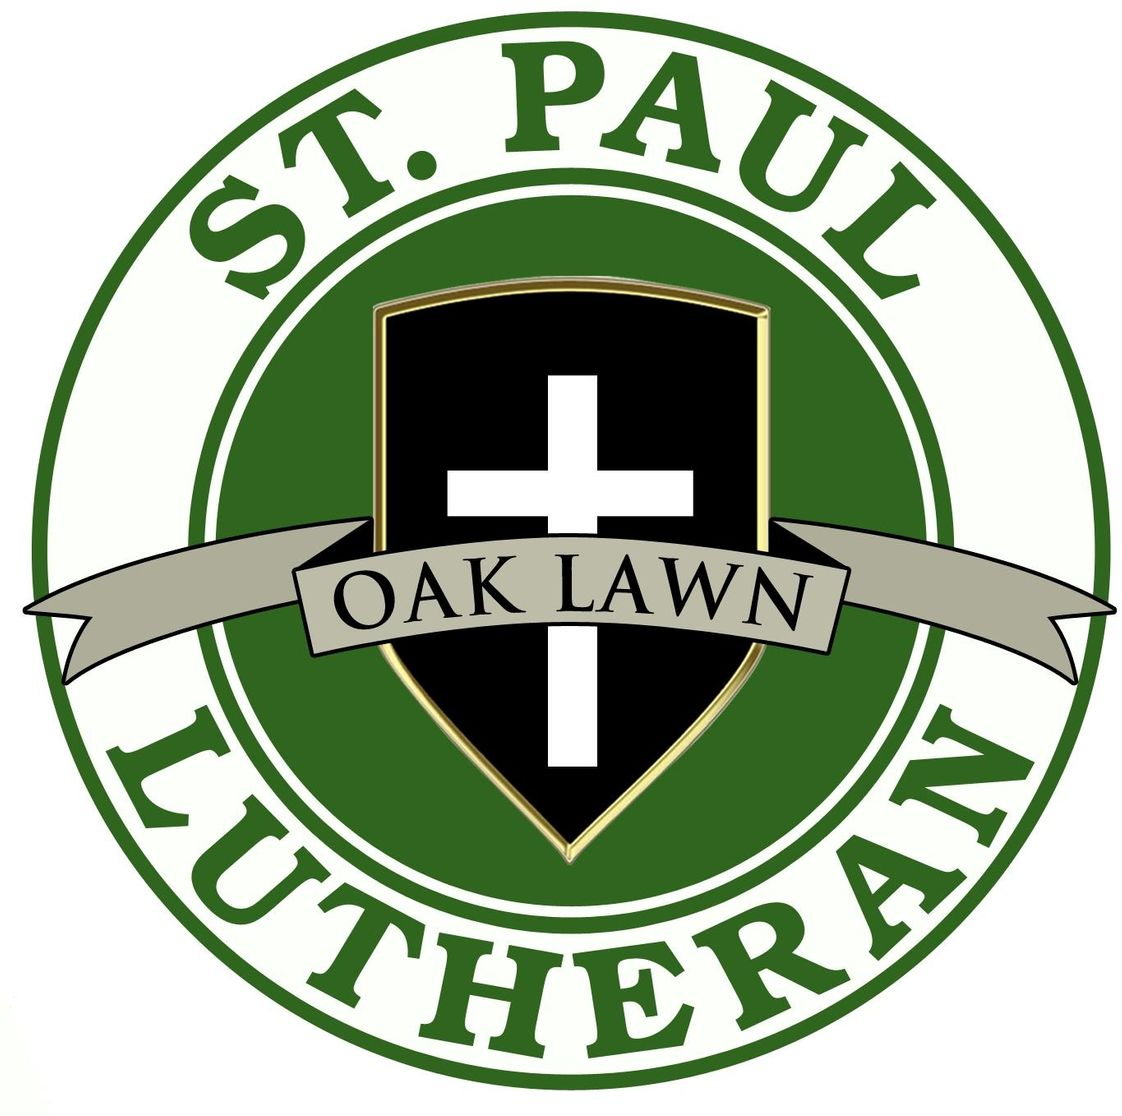 St. Paul Lutheran Church Photo #1 - Our St. Paul Lutheran School logo.